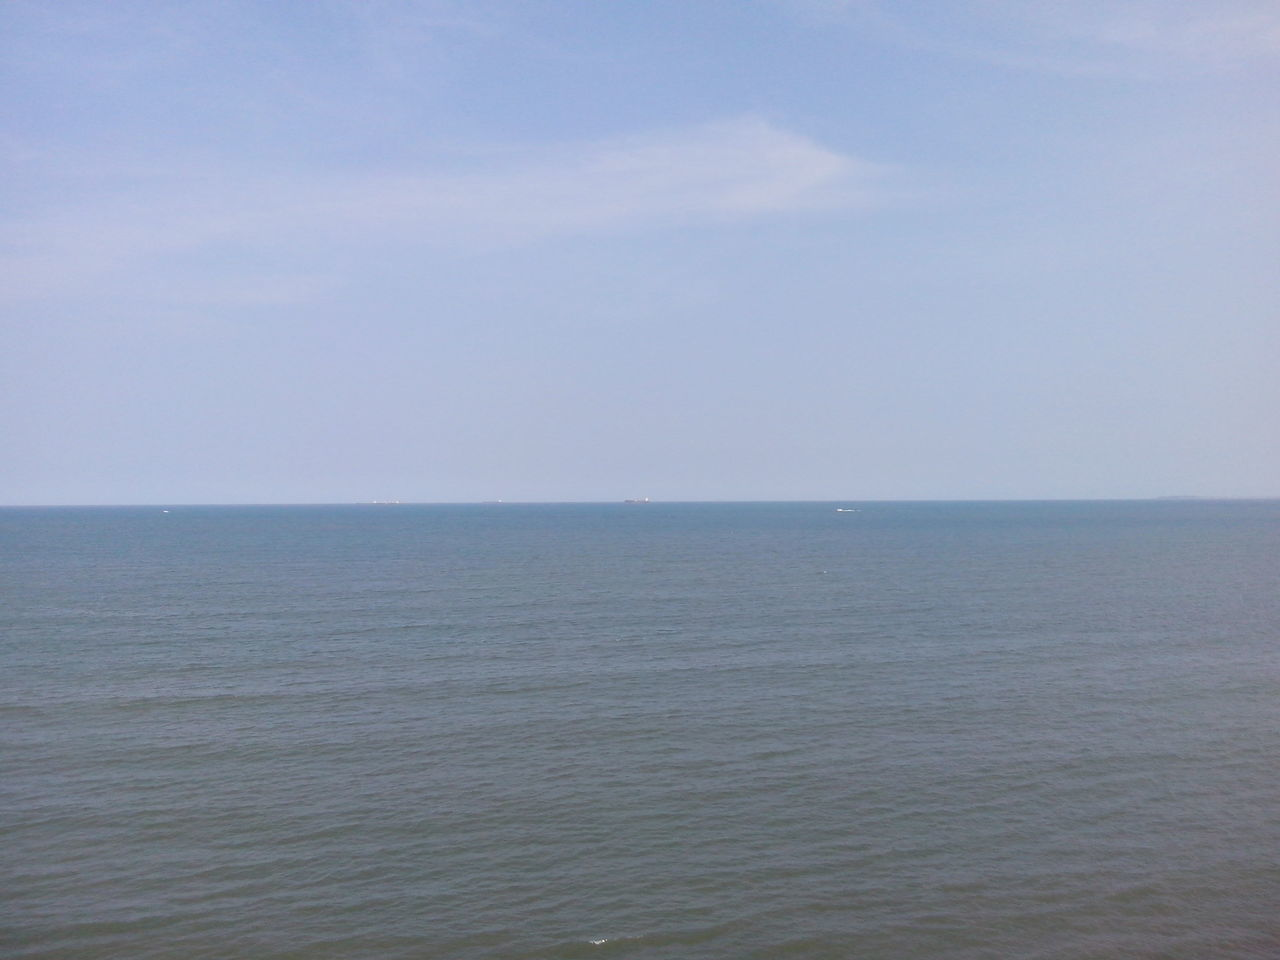 Inmenso Sea Sea And Sky Tranquility From My Point Of View Peaceful And Quiet Peaceful And Relaxing Peaceful And Serene EyeEm Nature Lover EyeEm Gallery Eyeem Photography Taking Photos